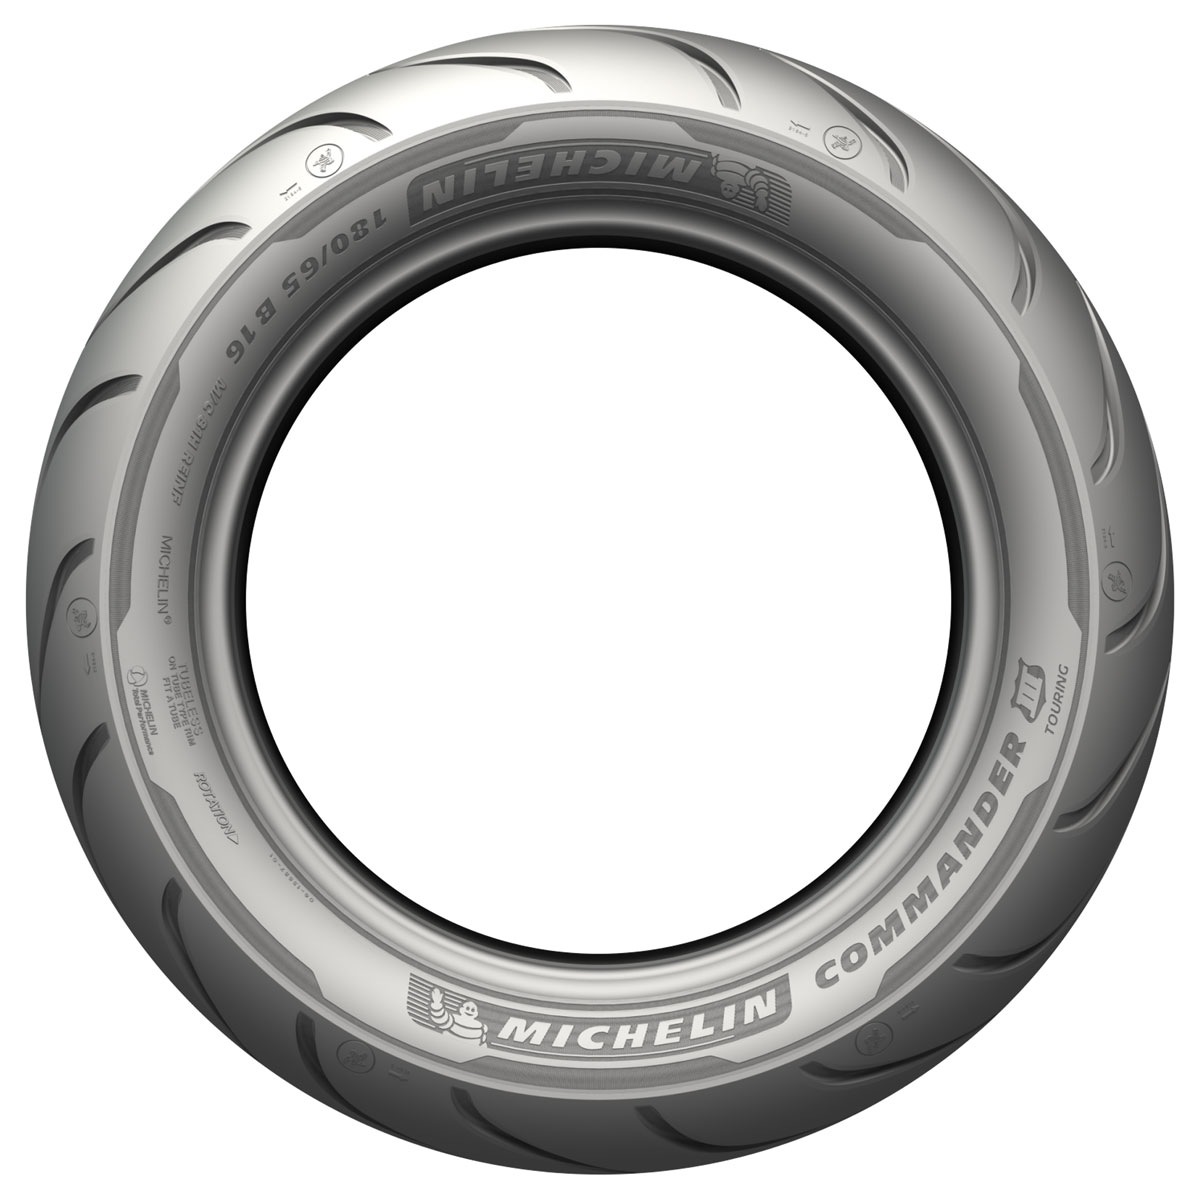 Michelin Commander III MU85 B16 Rear Touring Tire